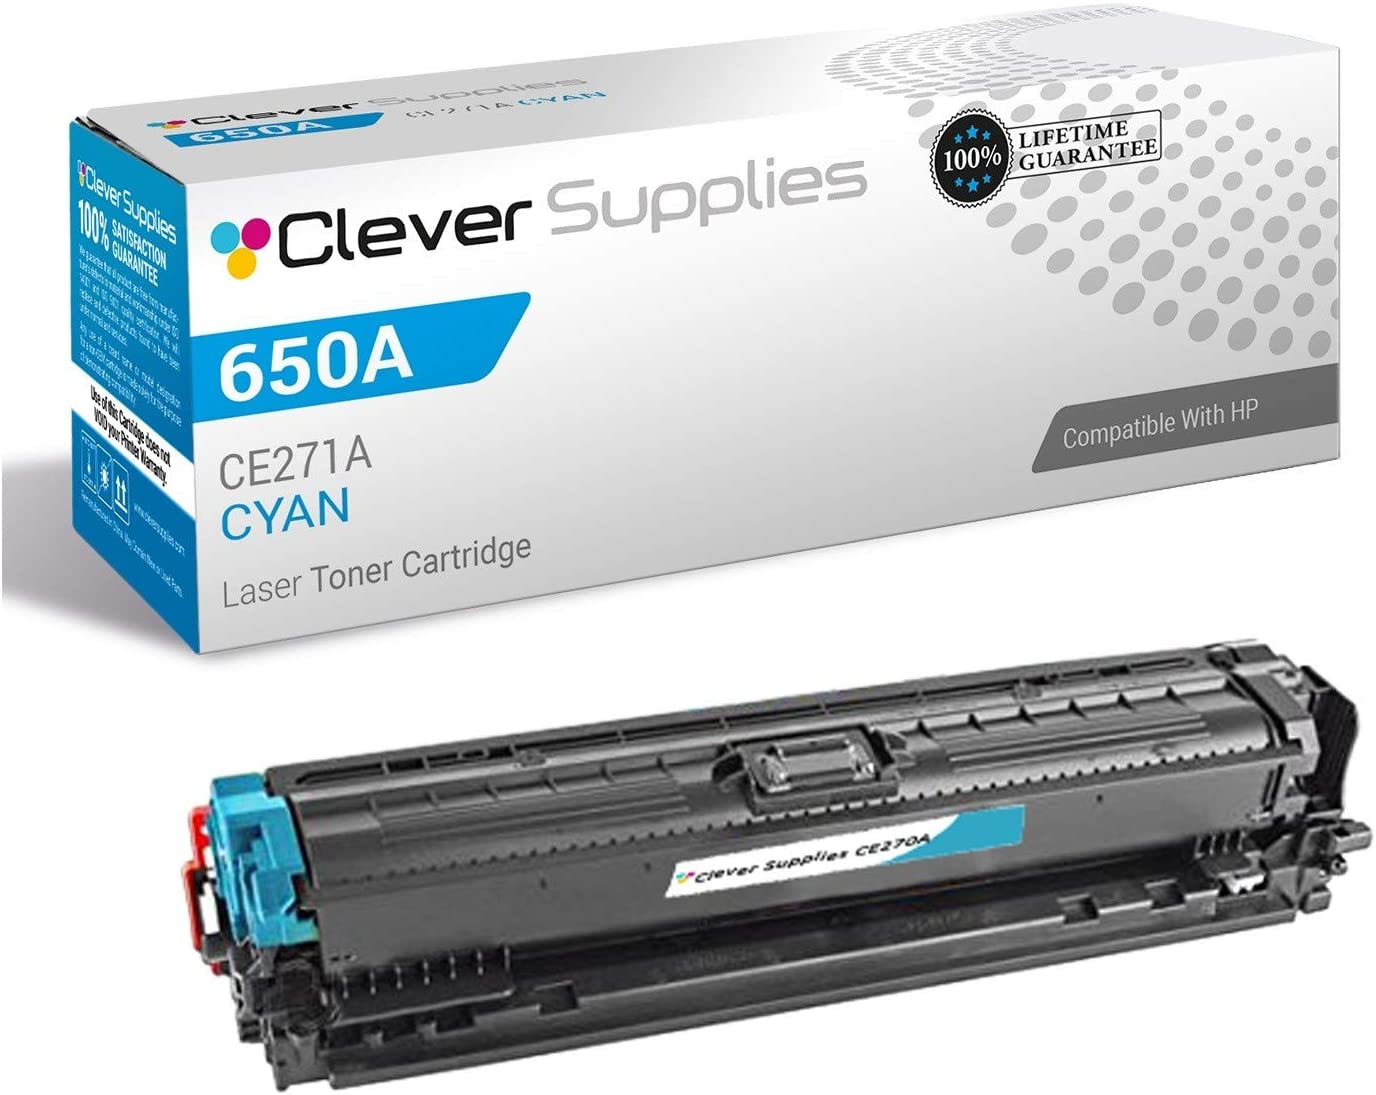 Cyan Compatible High Yield 650A CE271A Toner Cartridge use for HP Color Laserjet CP5525 CP5525dn CP5525n CP5525xh M750dn M750n M750xh Series Printer 2-Pack